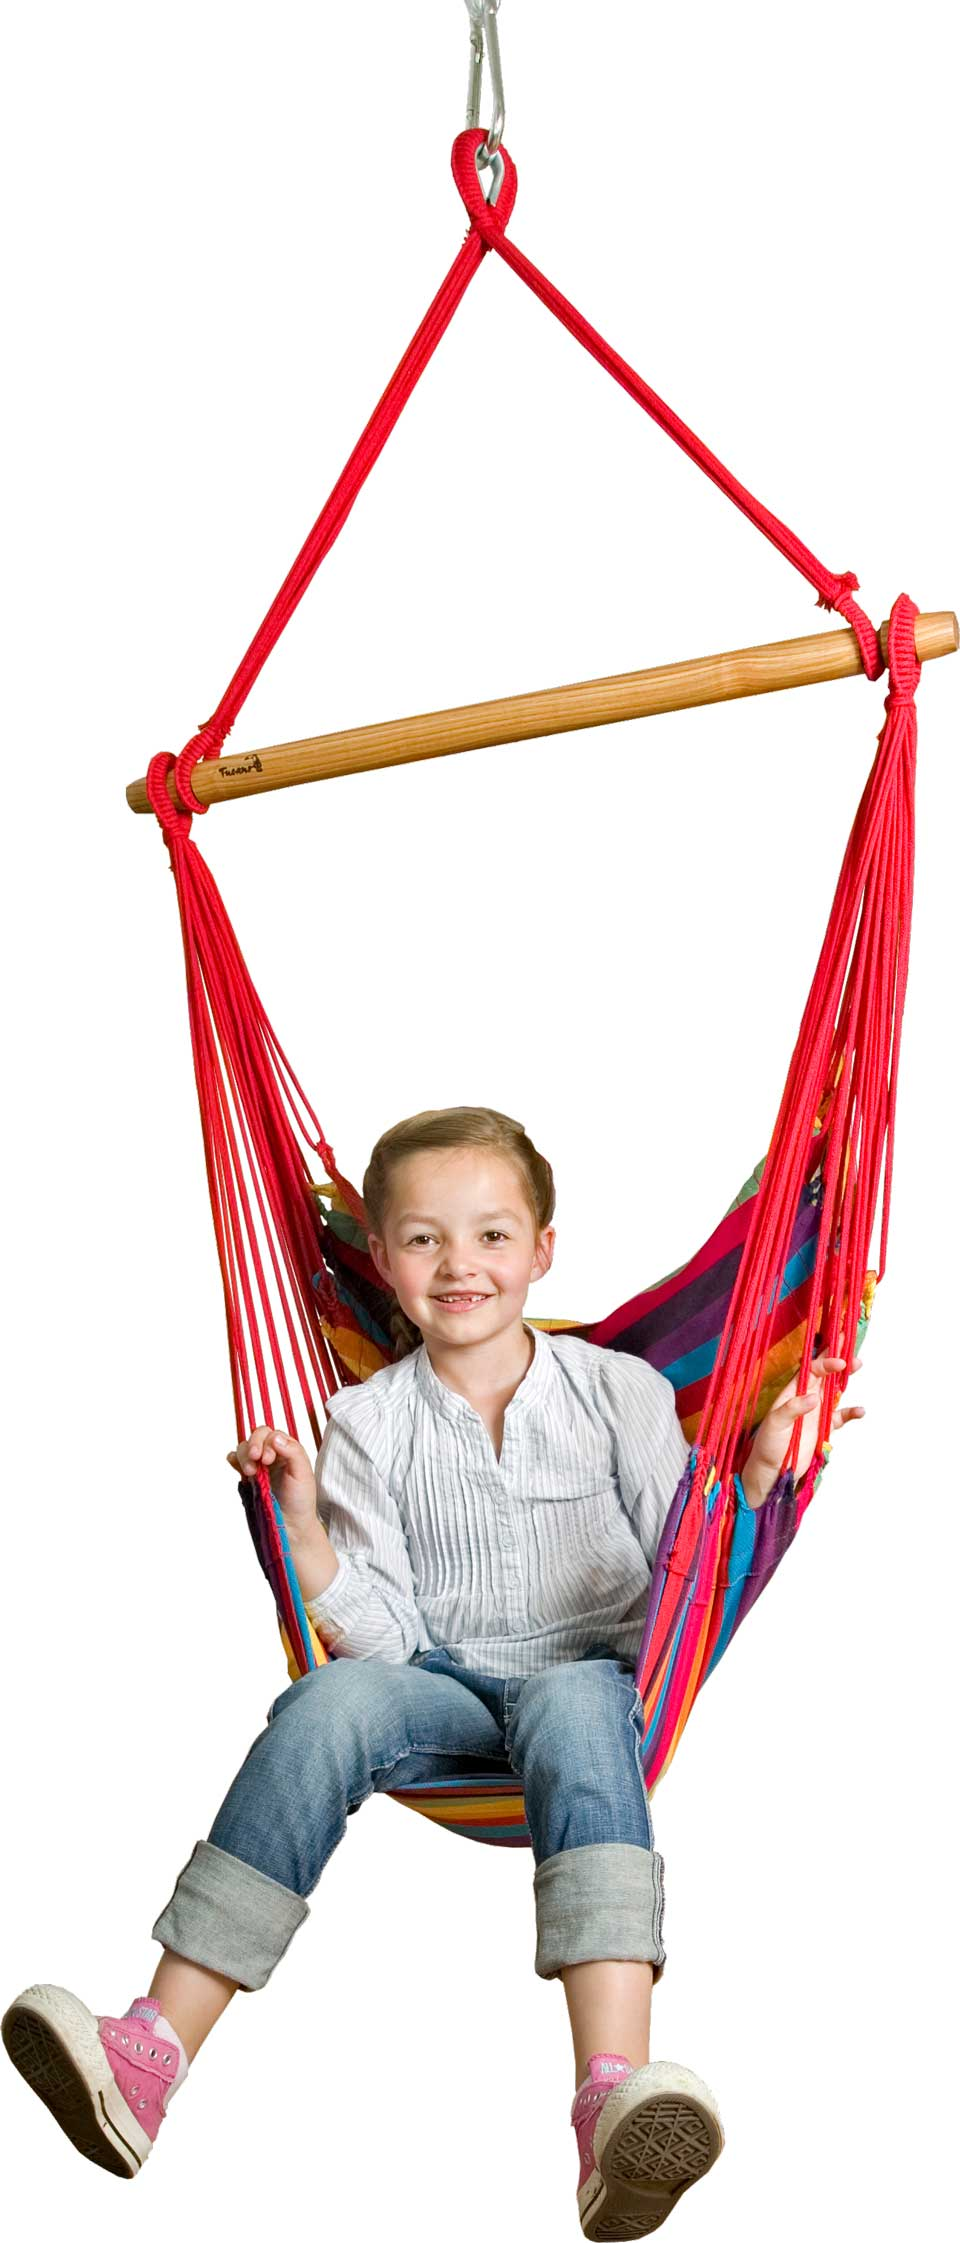 Swing Chair Cad Kid Picapau